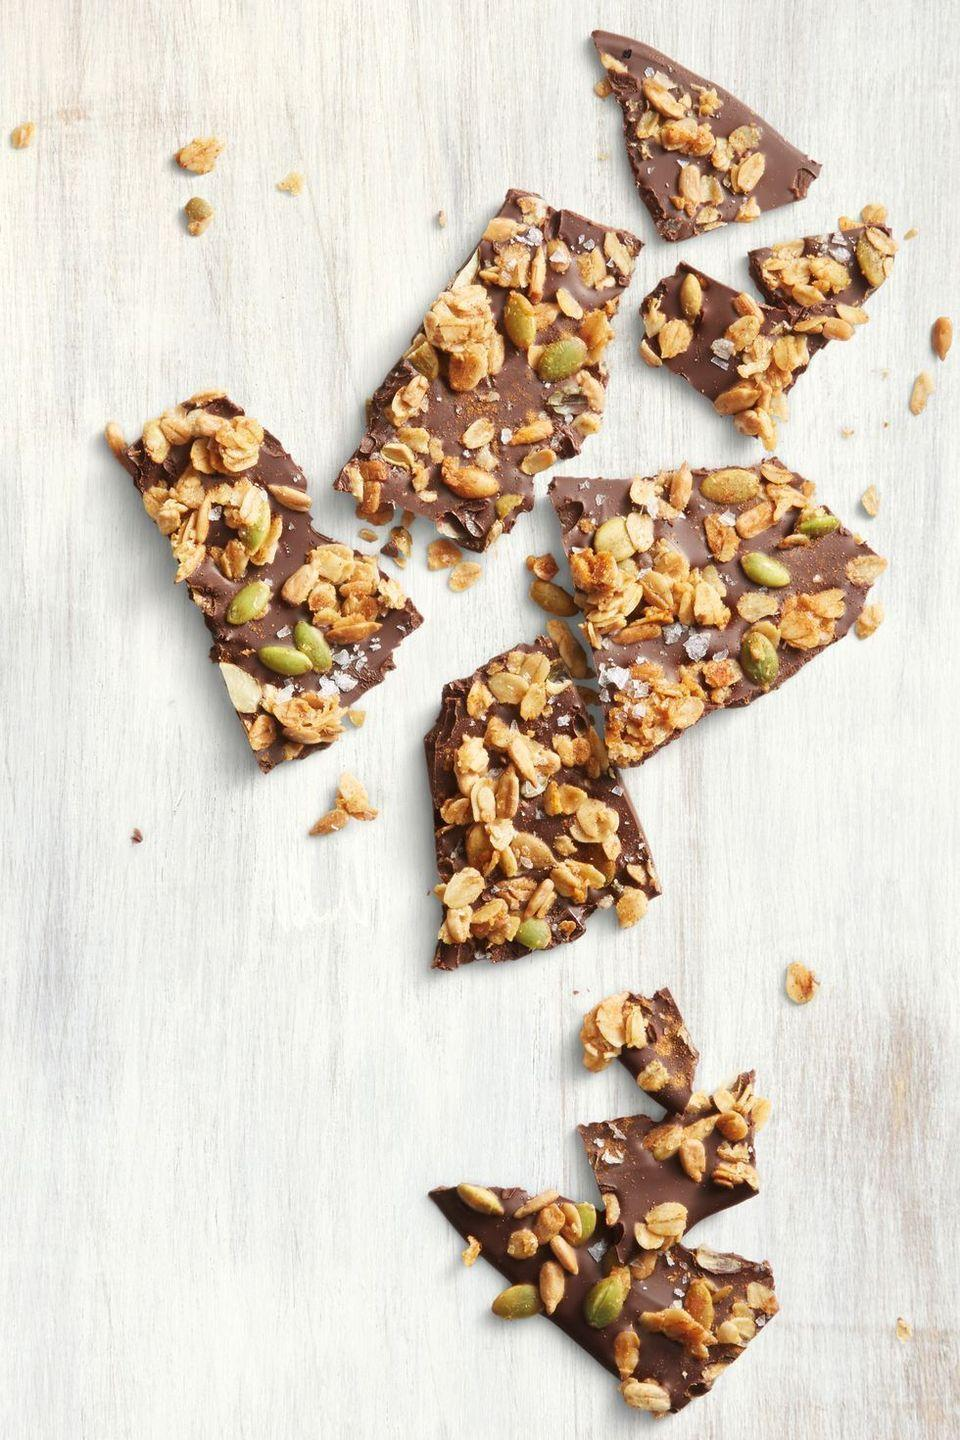 """<p>Melt down your favorite vegan chocolate to make this sweet snack that's perfect for those 3 o'clock cocoa cravings.</p><p><em><a href=""""https://www.goodhousekeeping.com/food-recipes/dessert/a22750665/aztec-chocolate-granola-bark-recipe/"""" rel=""""nofollow noopener"""" target=""""_blank"""" data-ylk=""""slk:Get the recipe for Aztec Chocolate Granola Bark »"""" class=""""link rapid-noclick-resp"""">Get the recipe for Aztec Chocolate Granola Bark »</a></em></p>"""